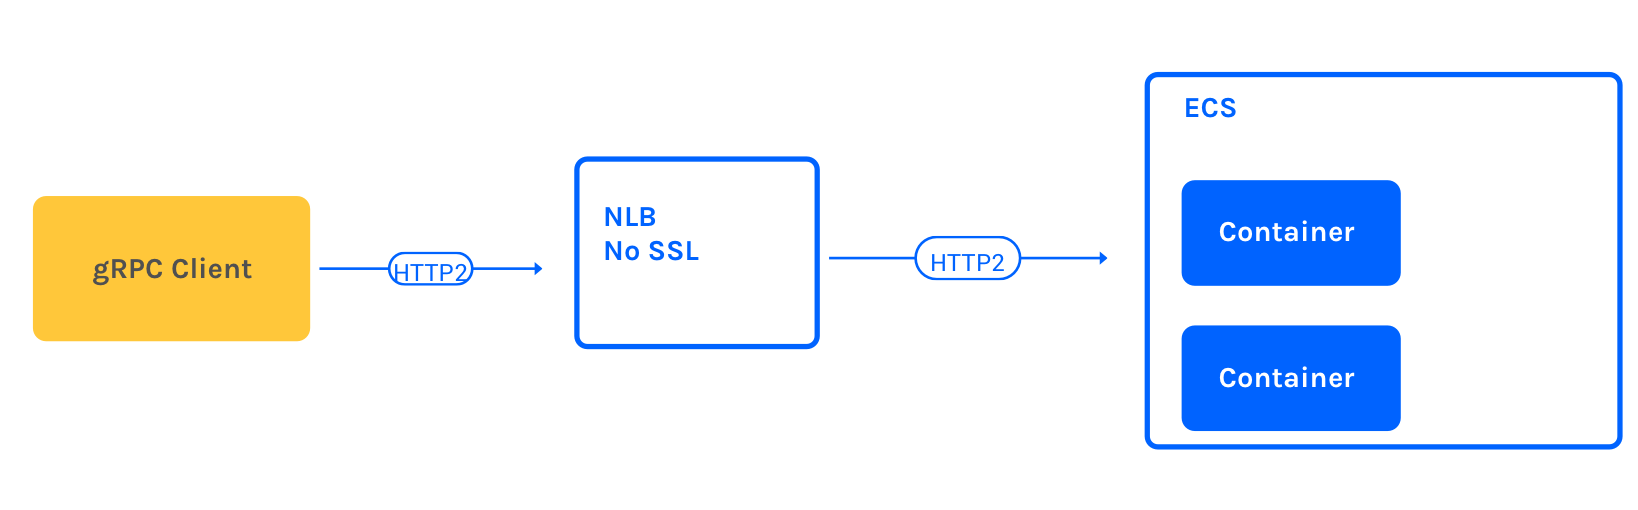 NLBs work for HTTP2 but no SSL